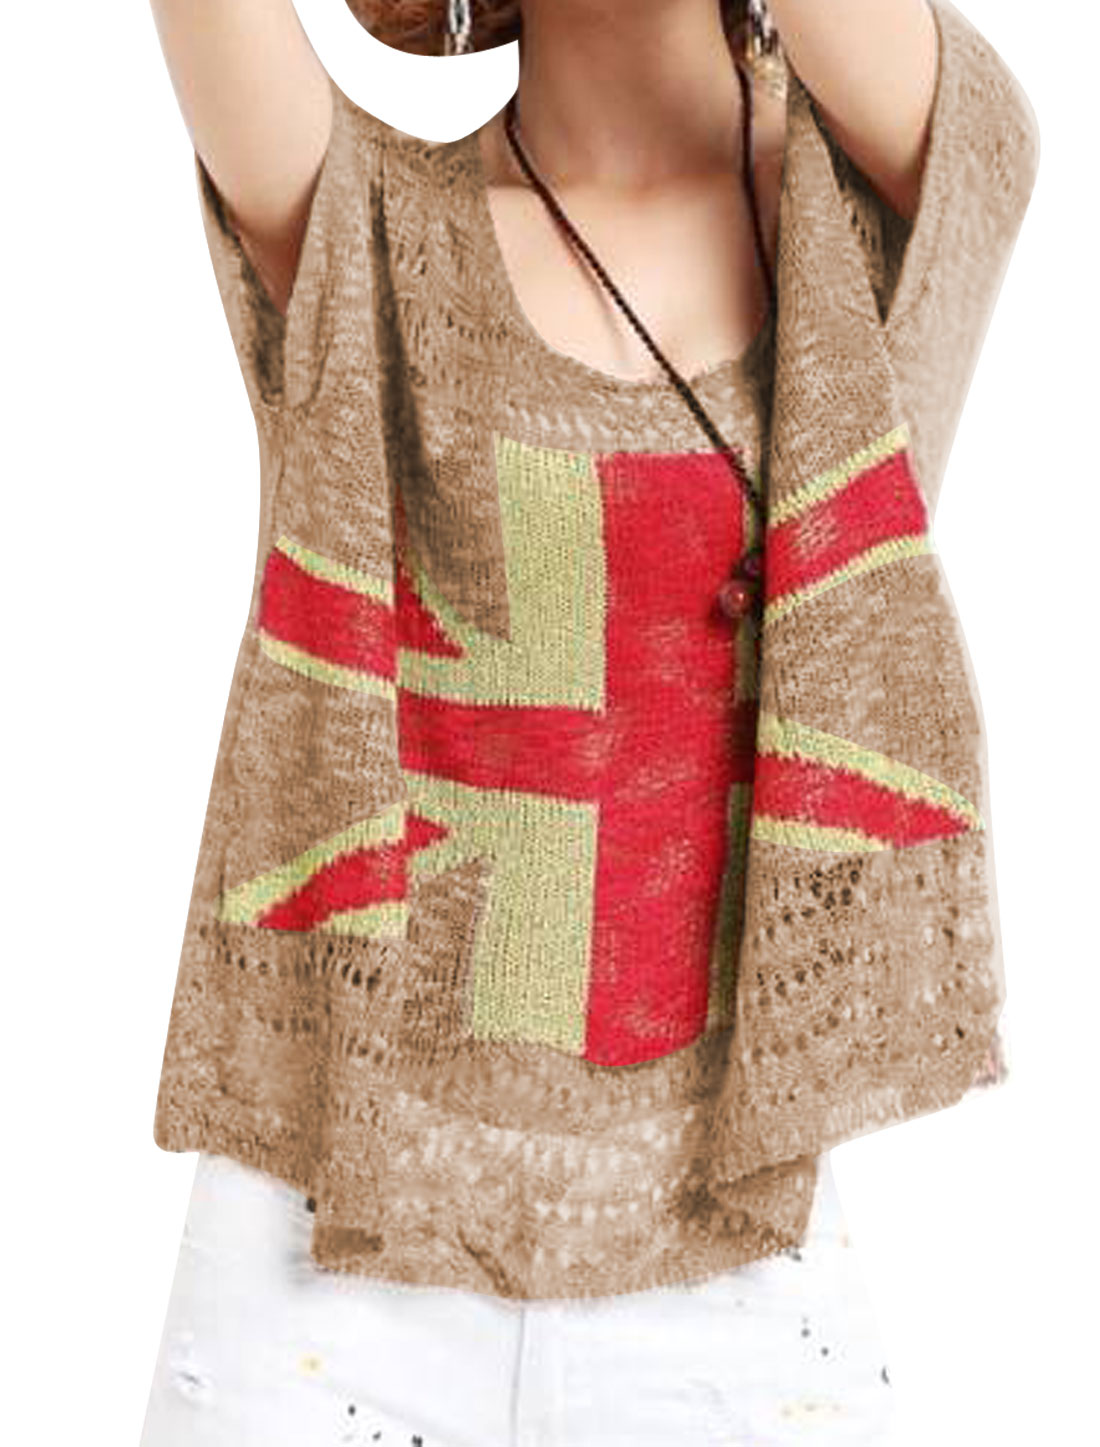 Lady Scoop Neck British Flag Hollow Out Knit Top Coffee Brown S